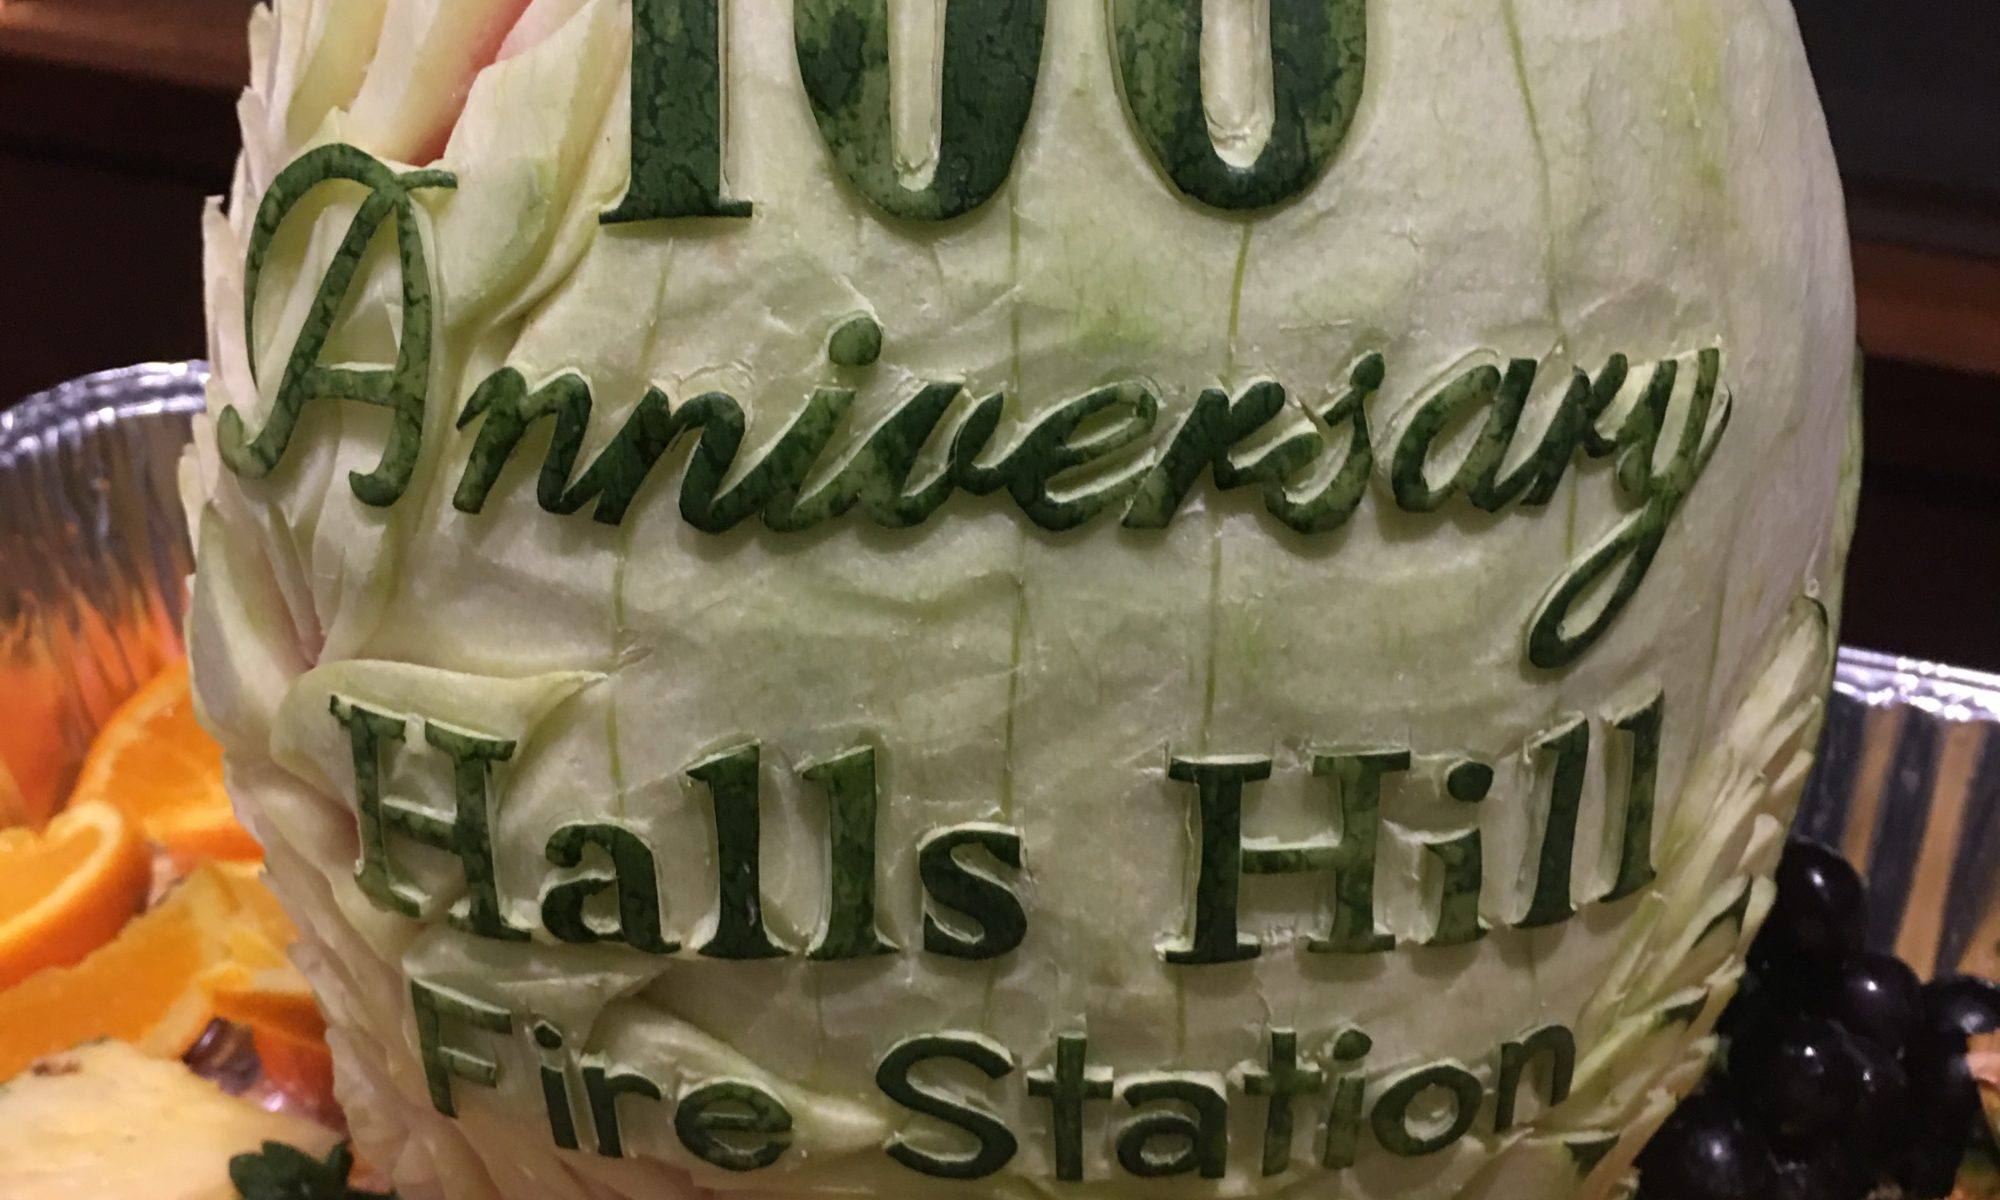 halls hill watermelon carving fire station 8